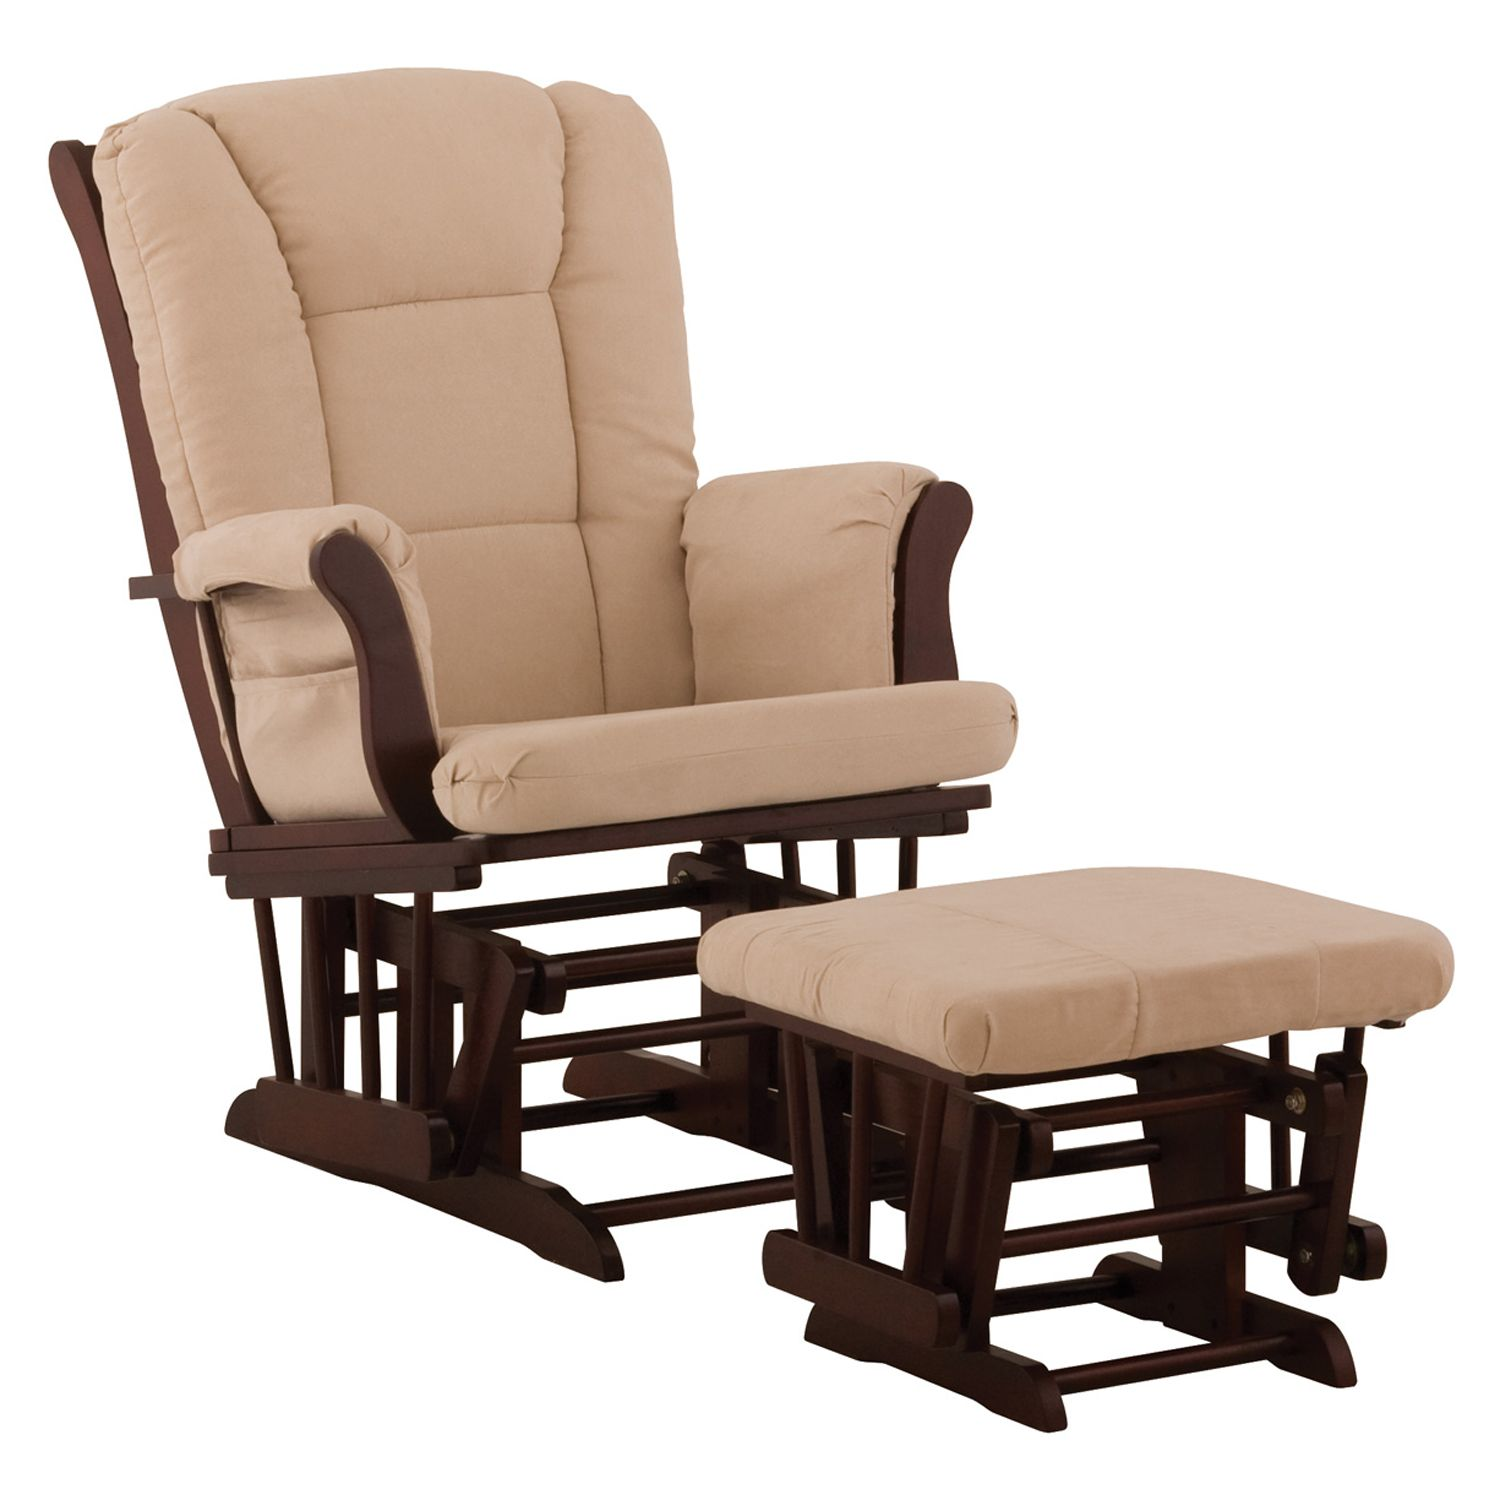 Stork Craft Tuscany Glider Rocking Chair U0026 Ottoman